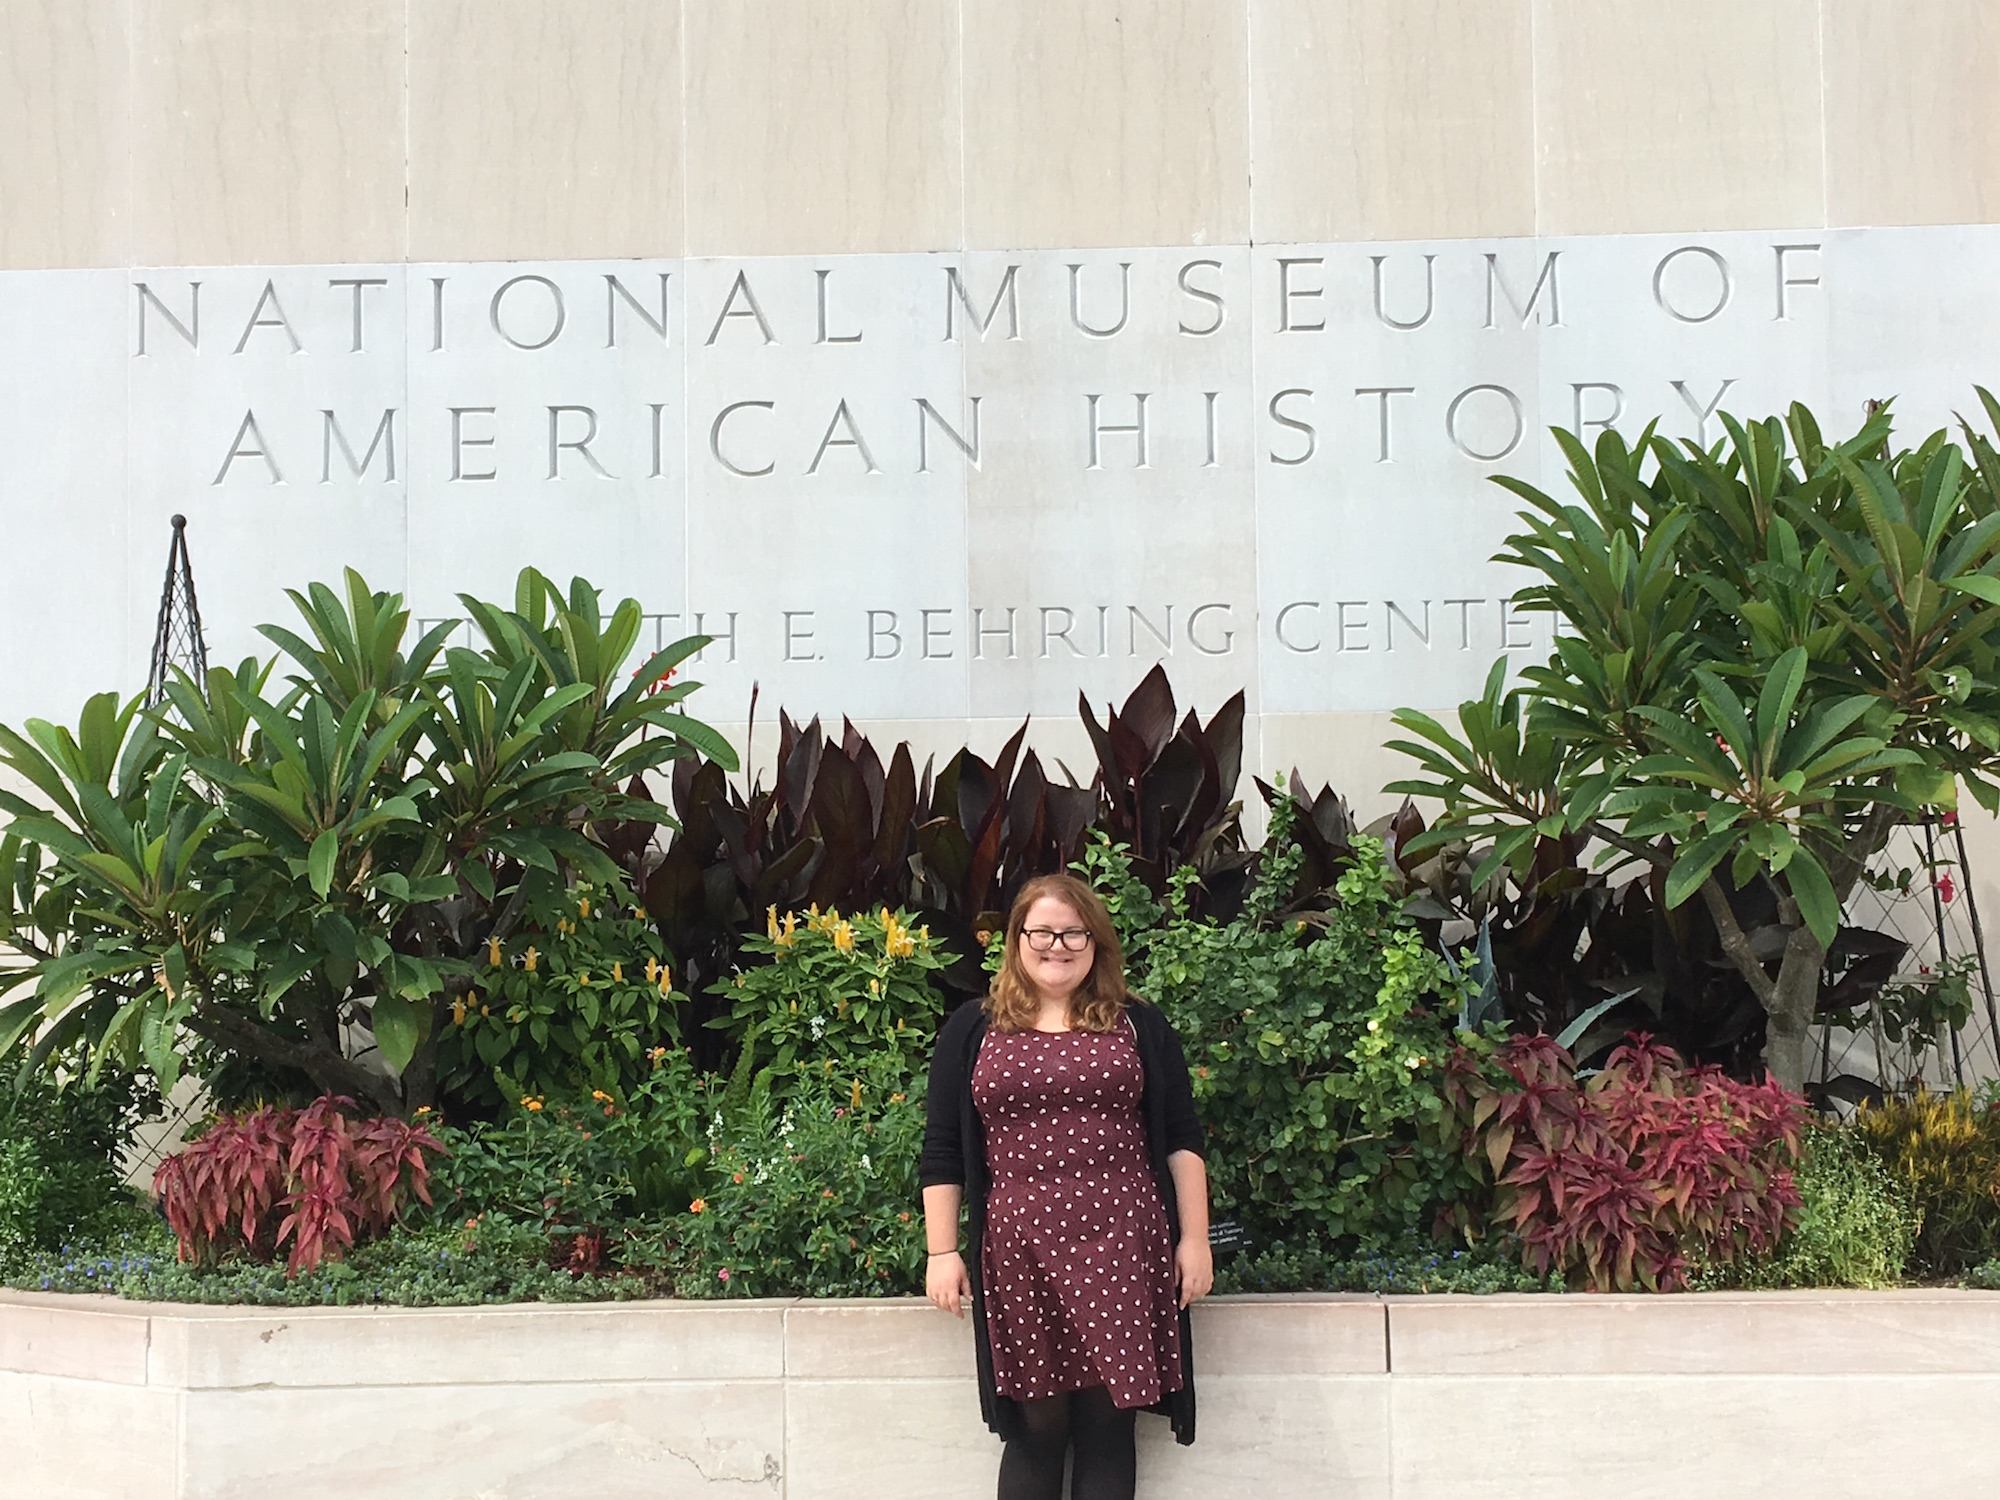 Collins in front of the Smithsonian National Museum of American History in Washington, D.C.